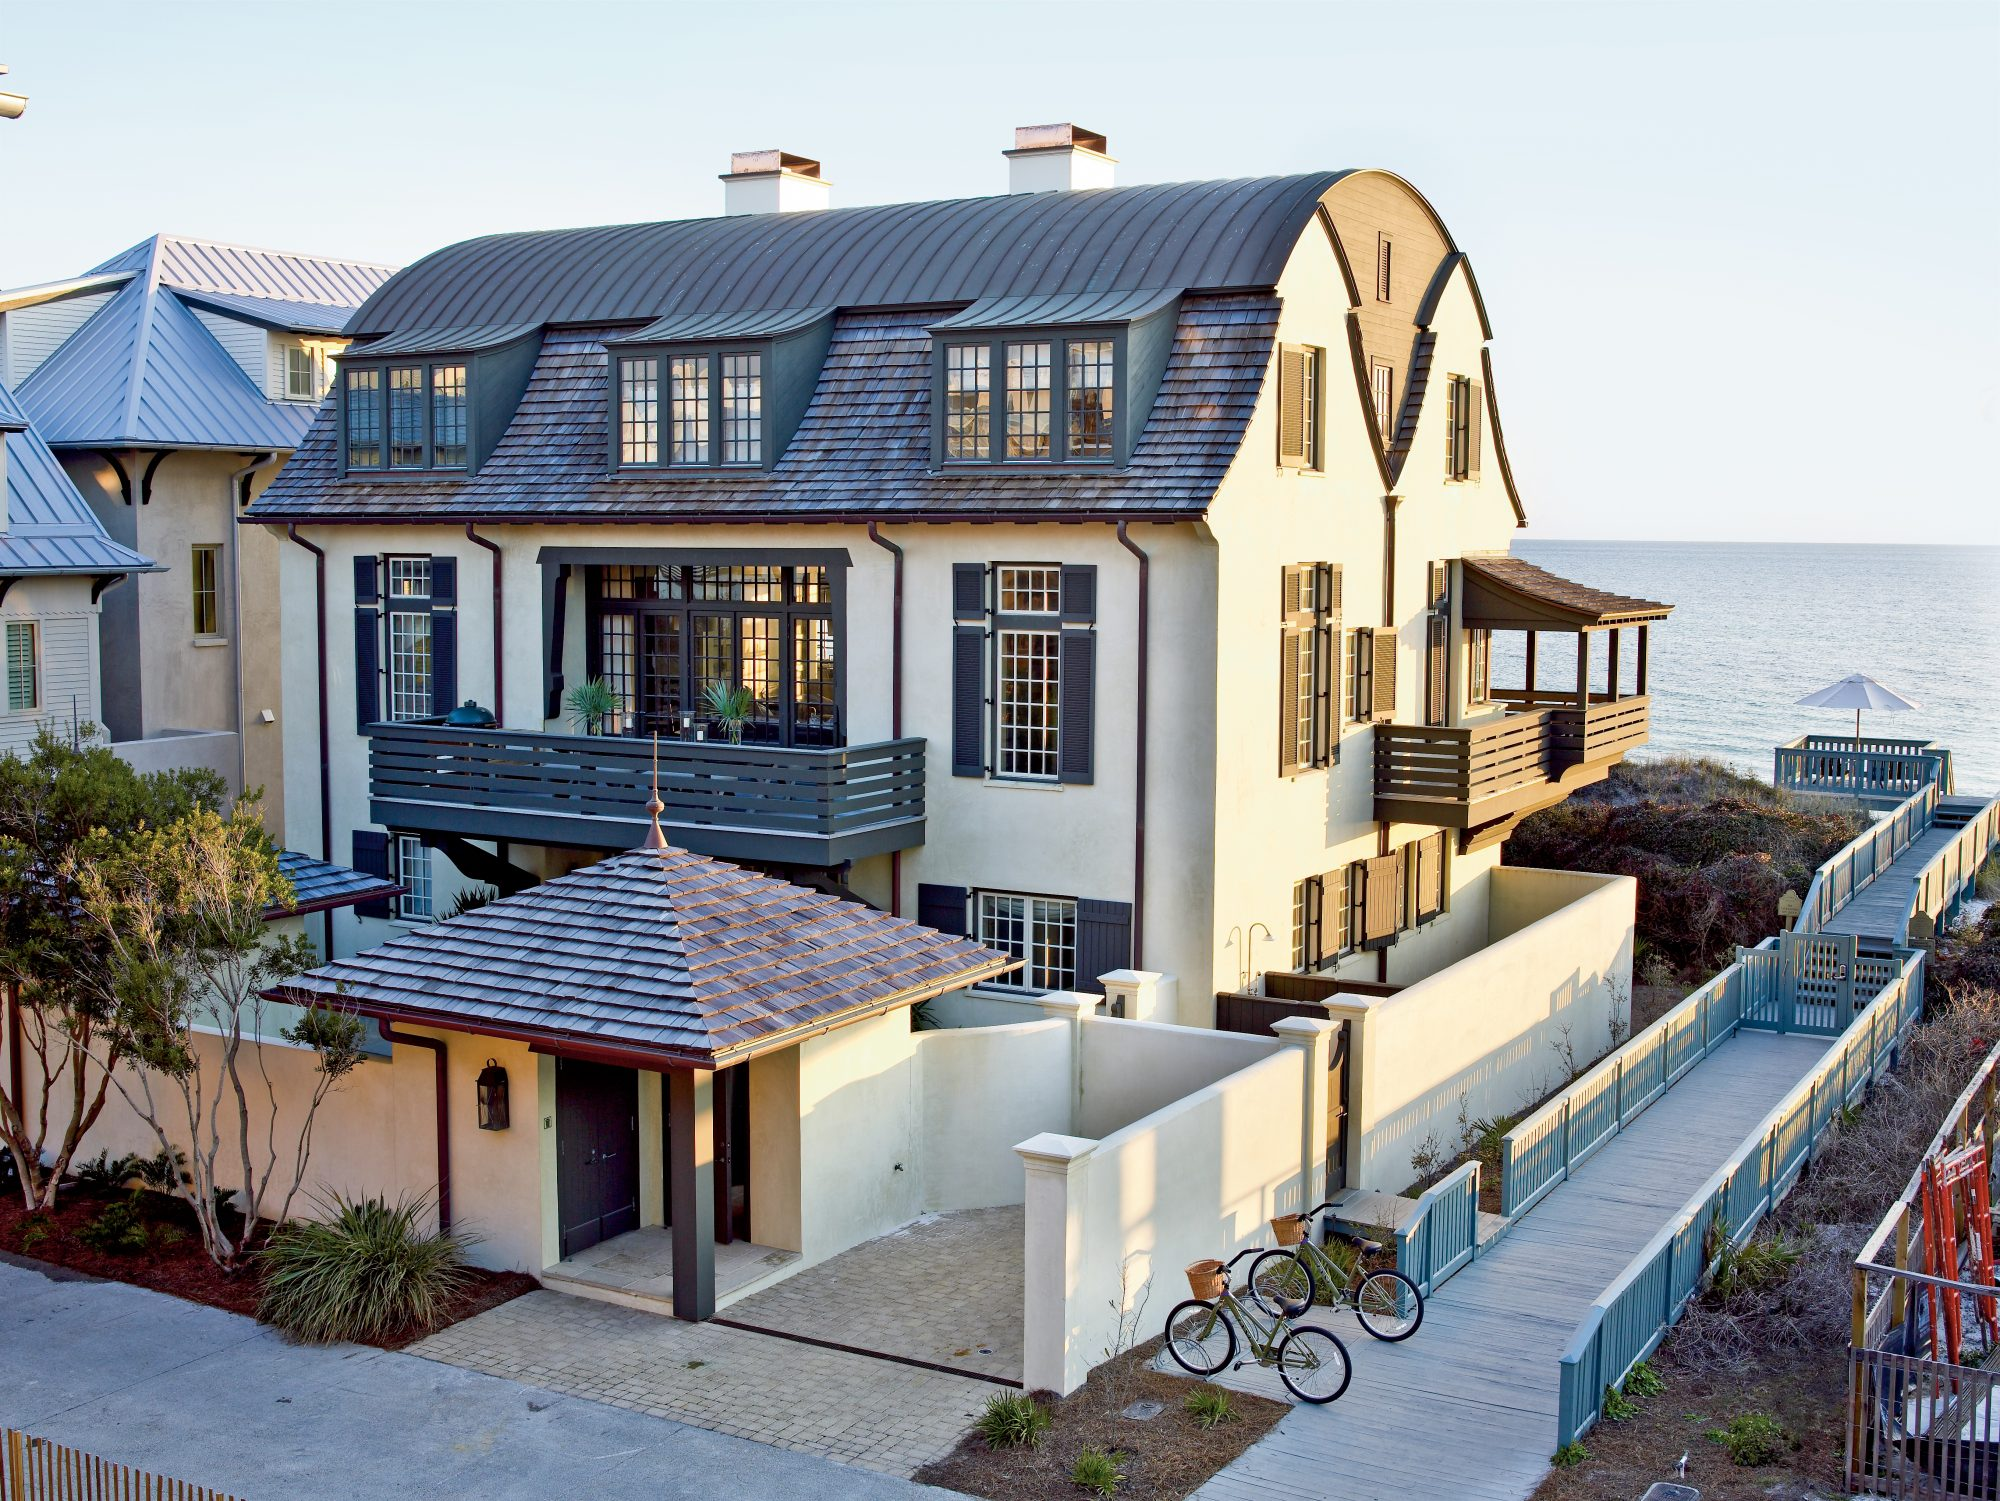 The Style: This three-level, Dutch Colonial take on a sea captain's home is a reminder that designing a beach house isn't always about overt references to the shore. Sometimes it's just about harnessing those soothing emotions that the ocean evokes.